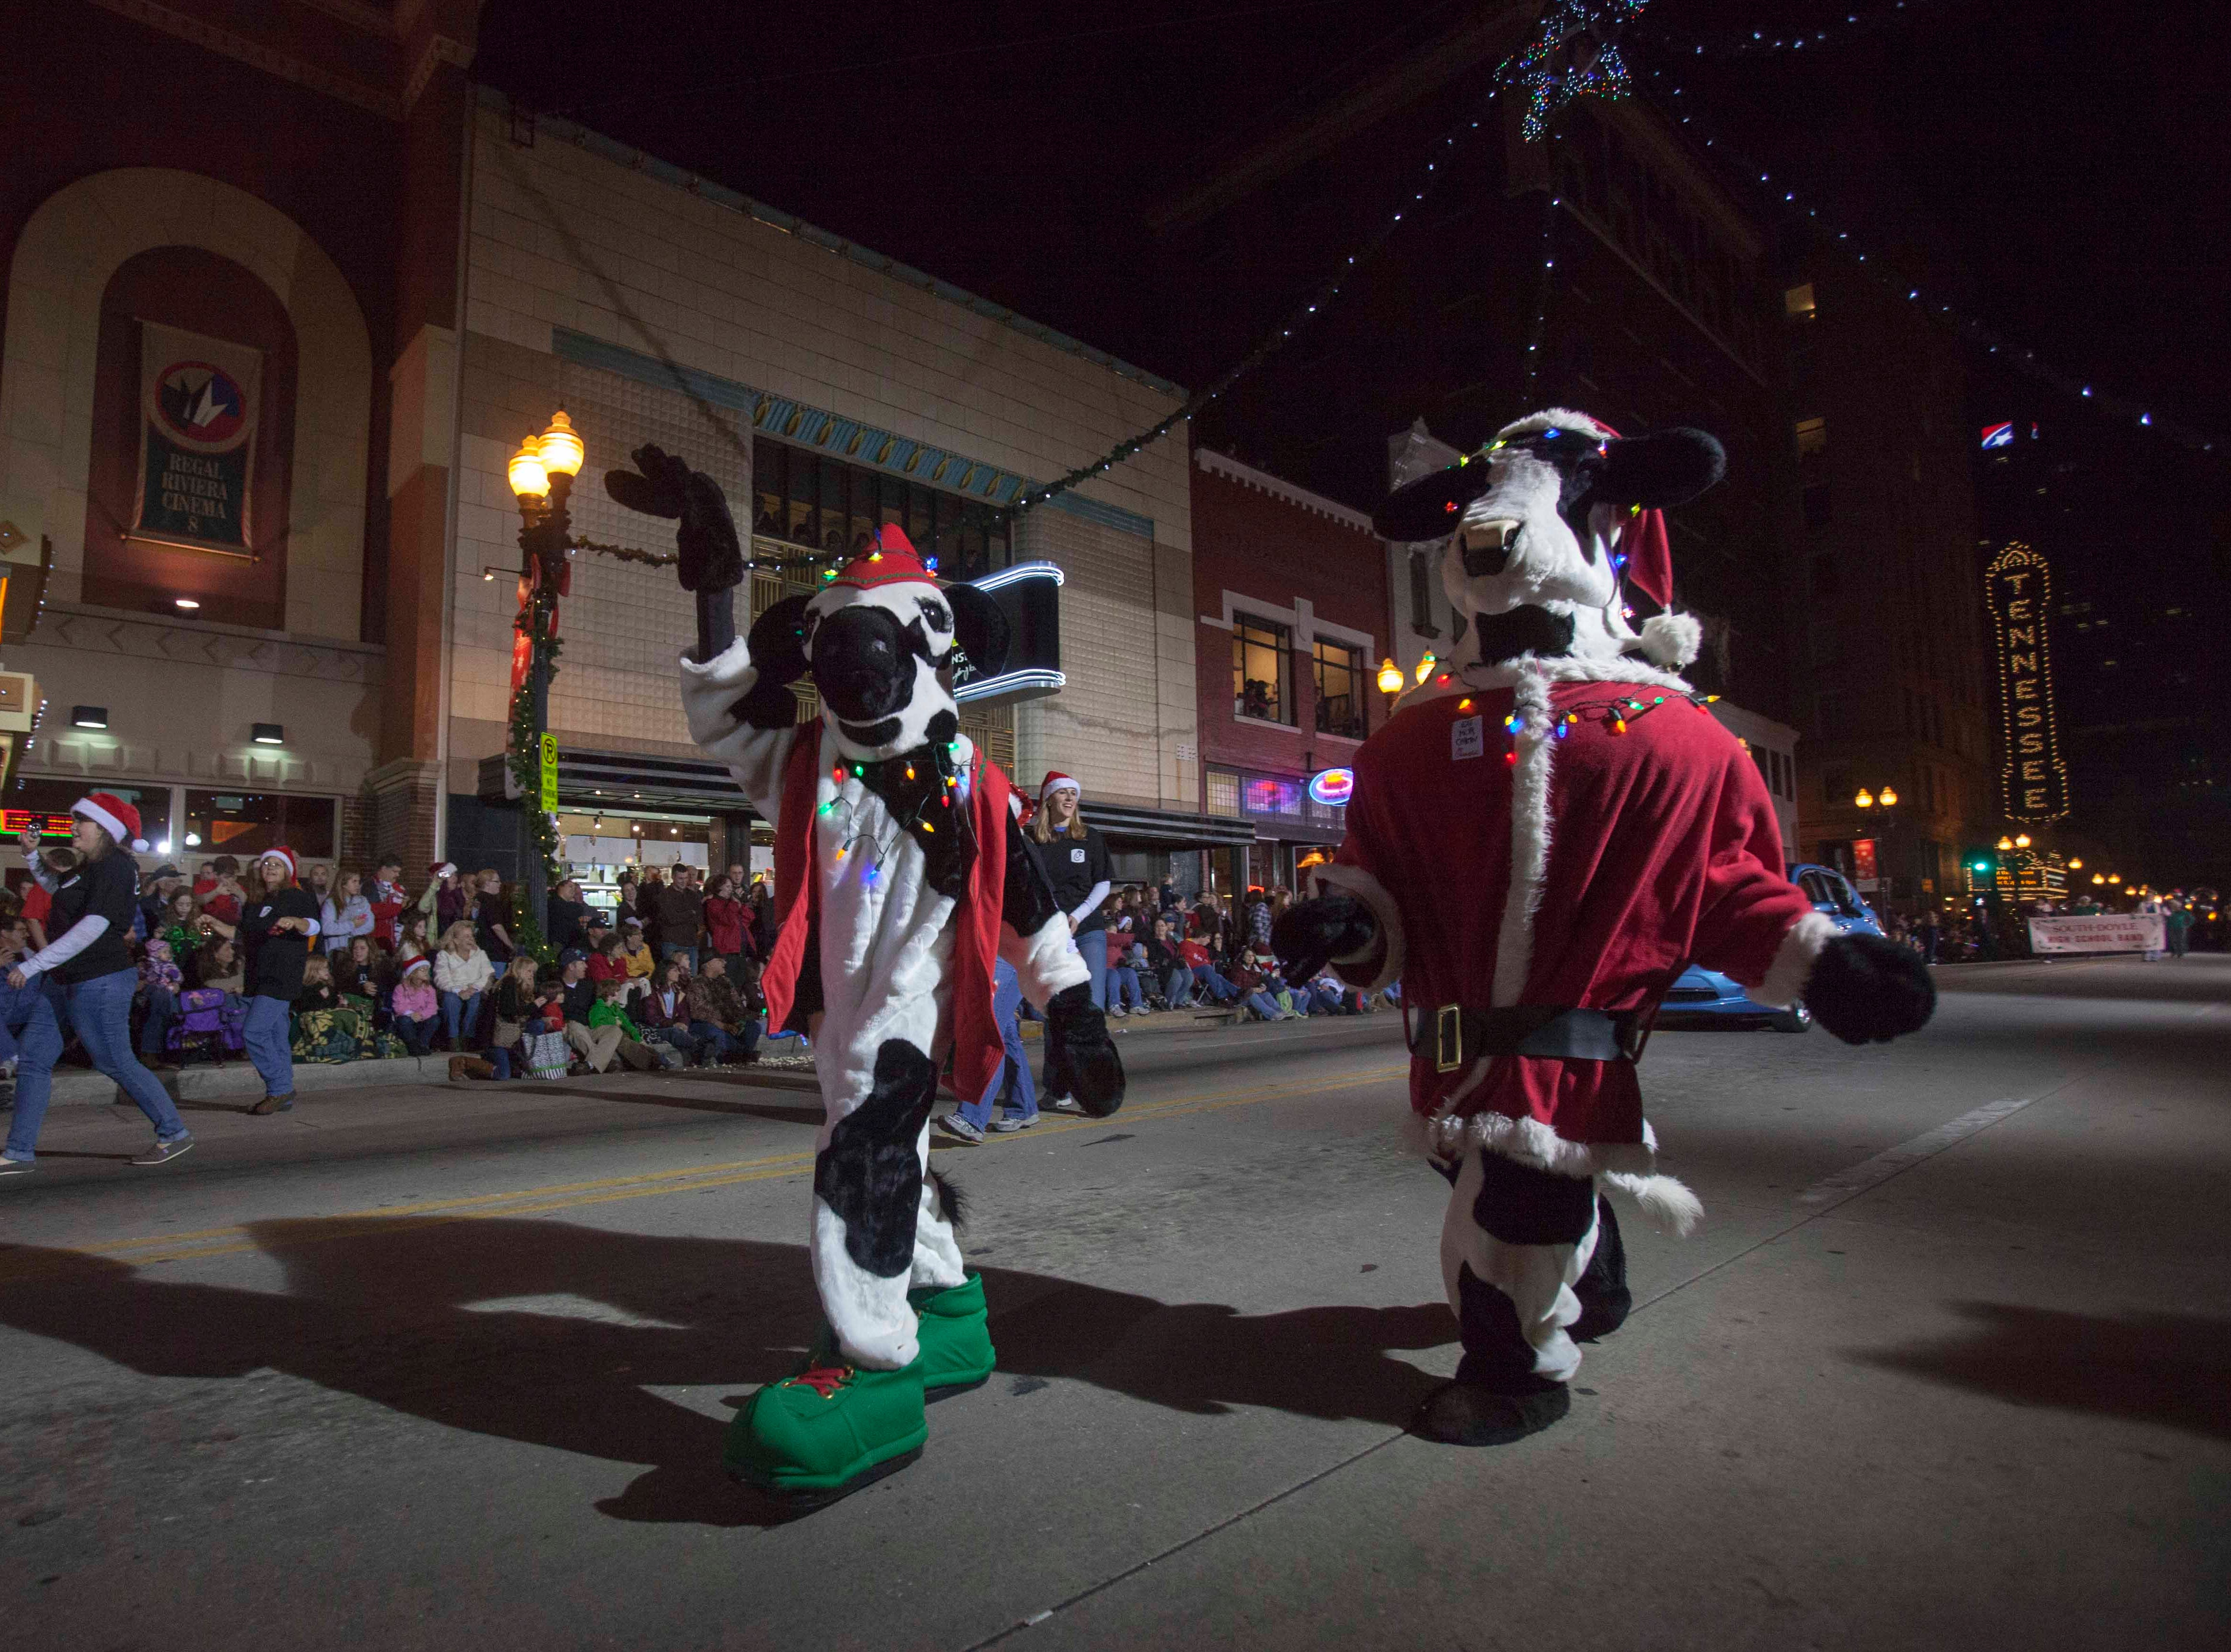 Chick Fil A cows wave as they march down Gay Street during the Christmas parade downtown Friday, Dec. 7, 2012.